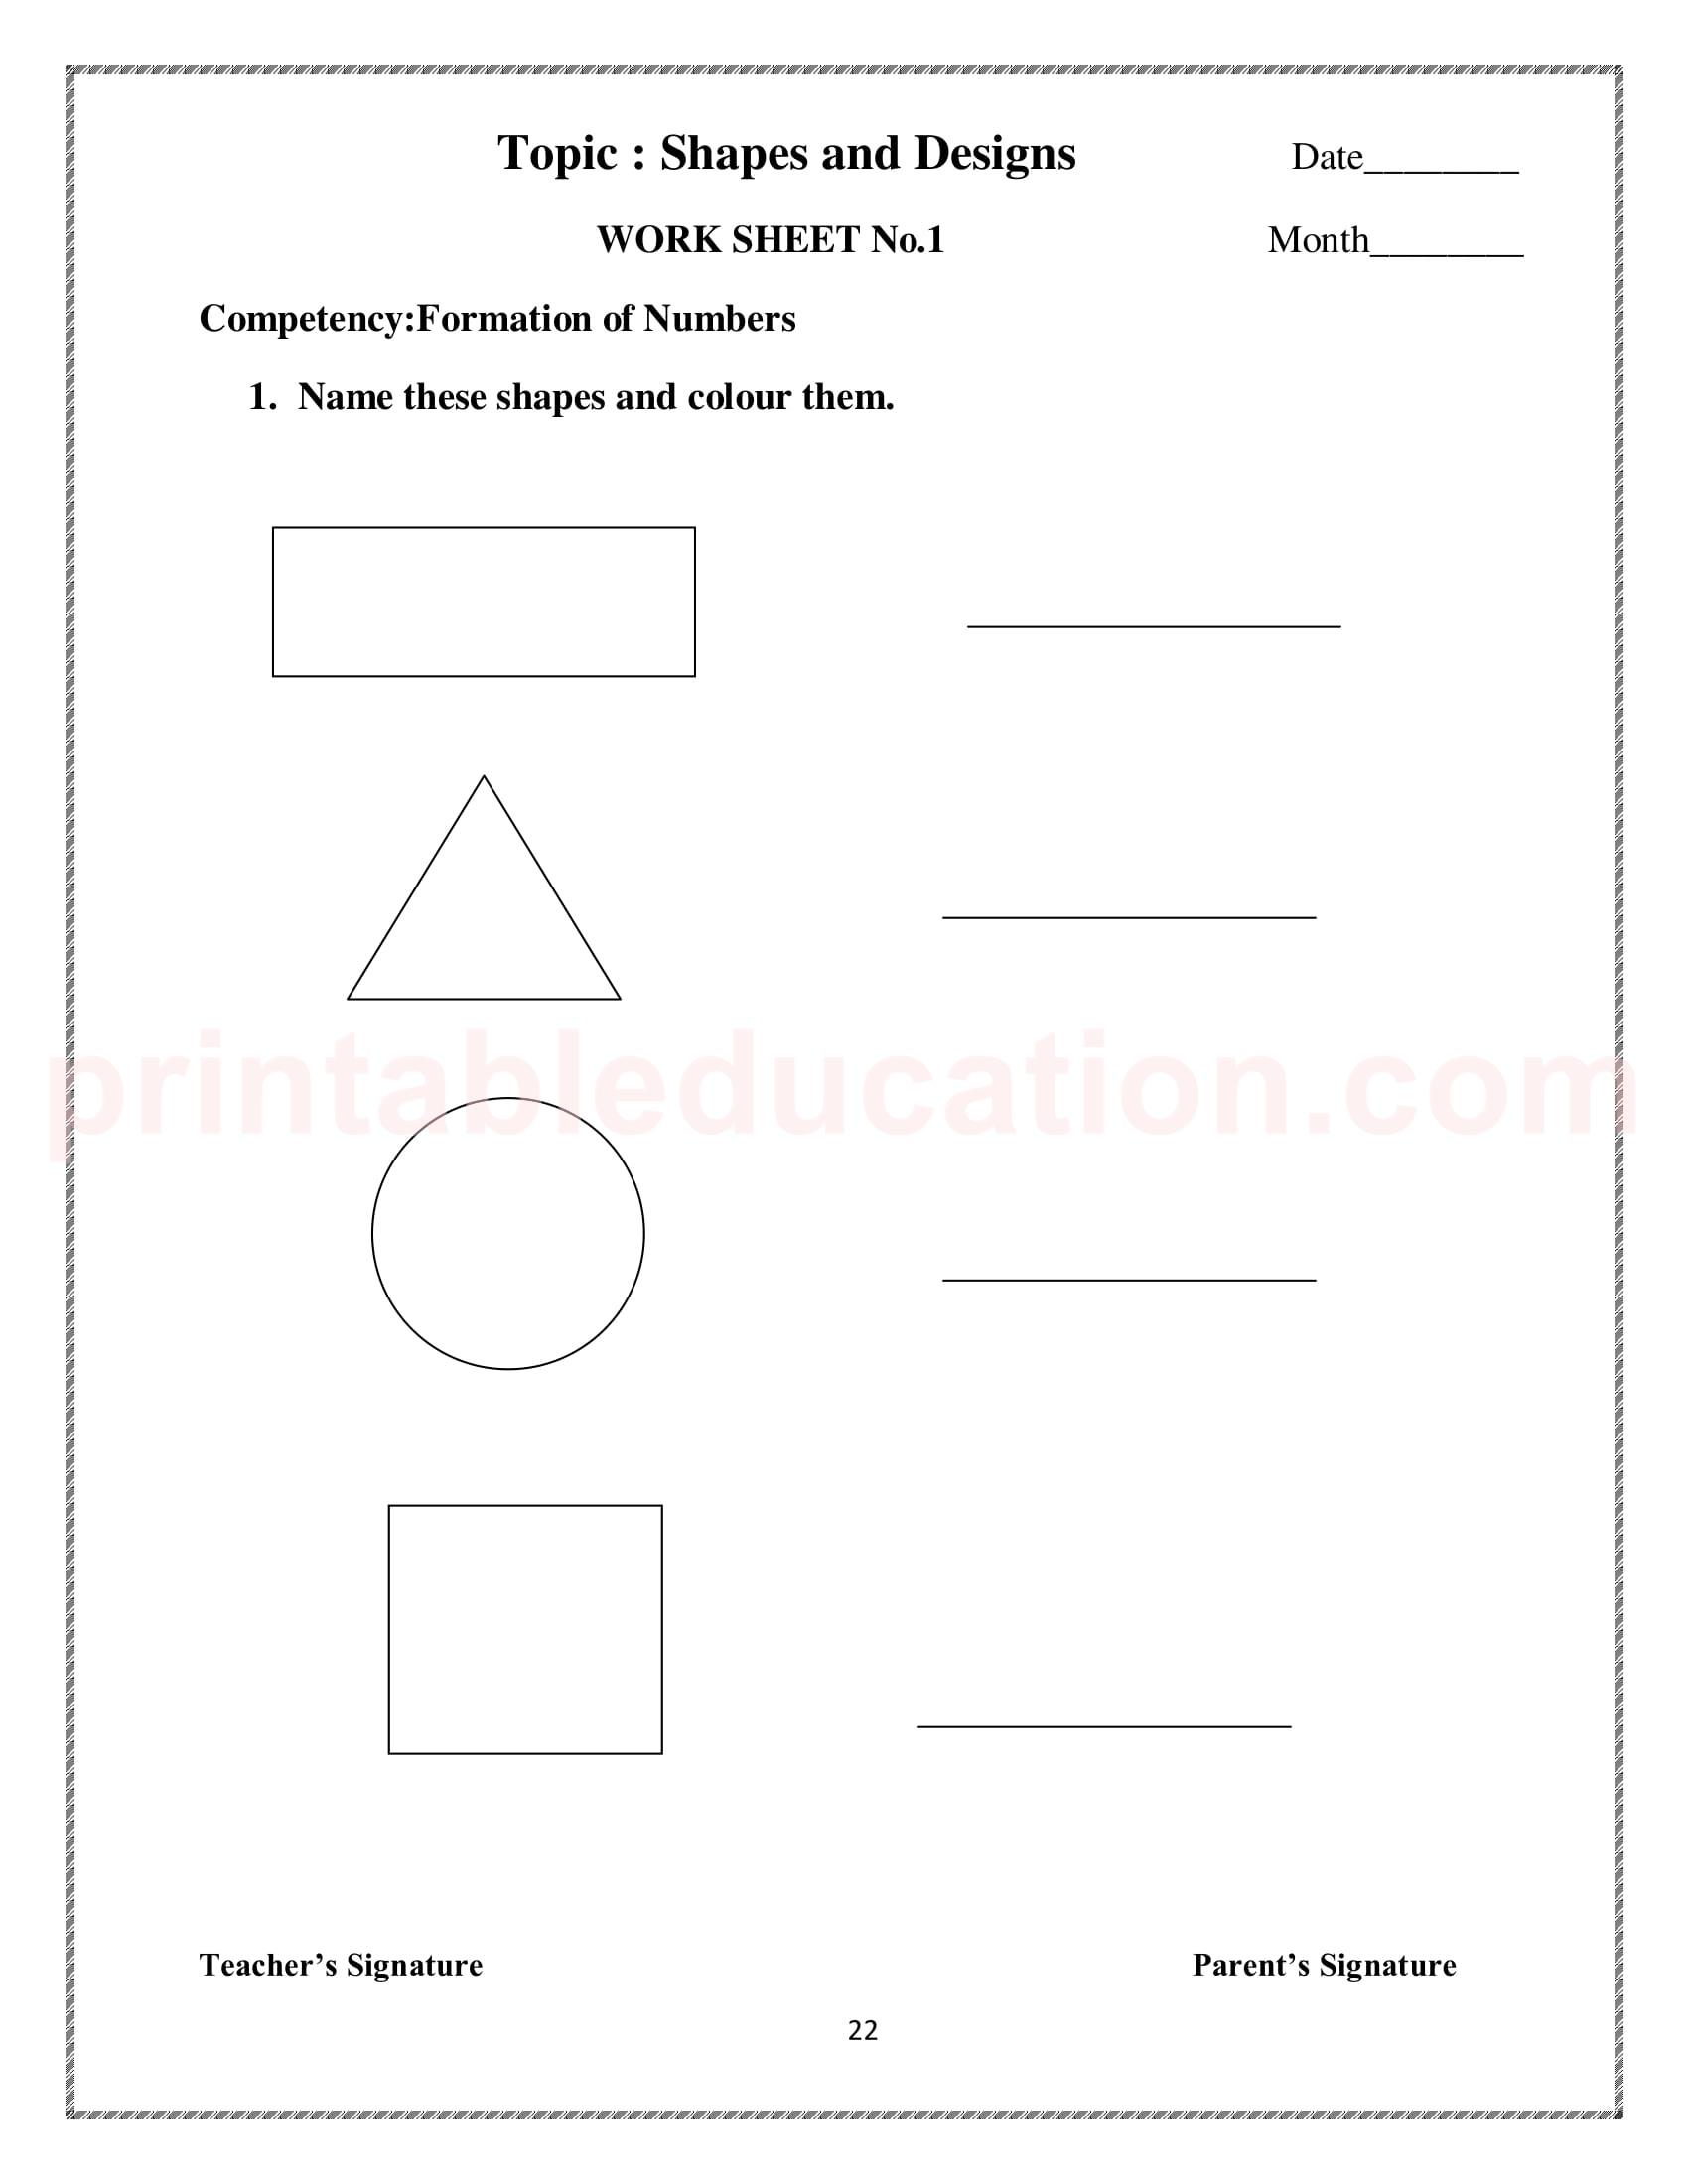 Basic Math Shapes Worksheets For Kids